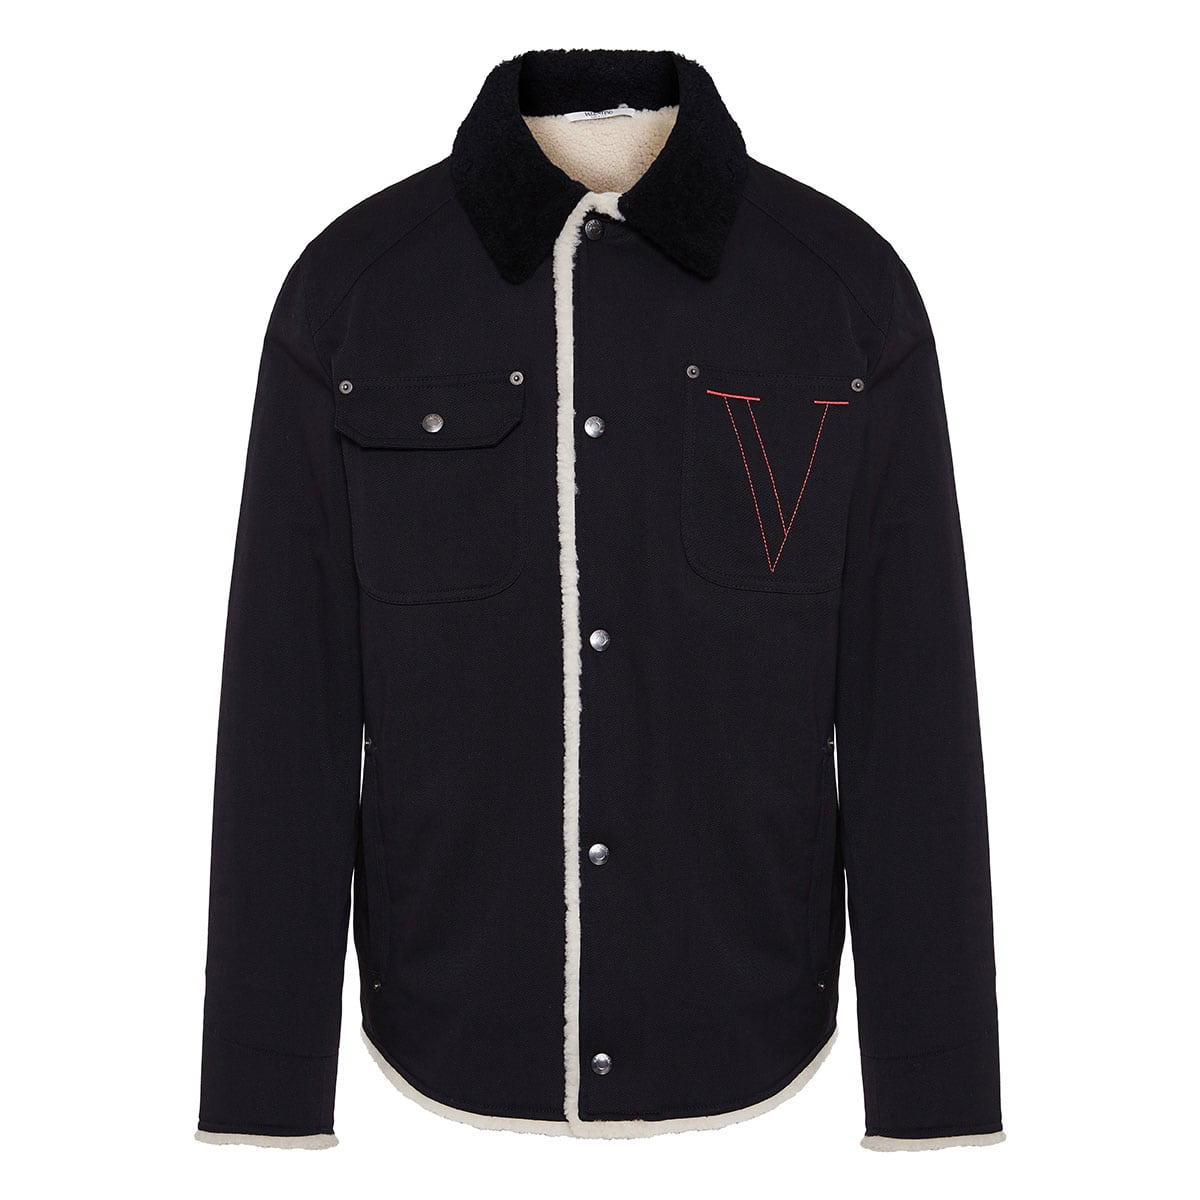 V-embroidered shearling and cotton jacket